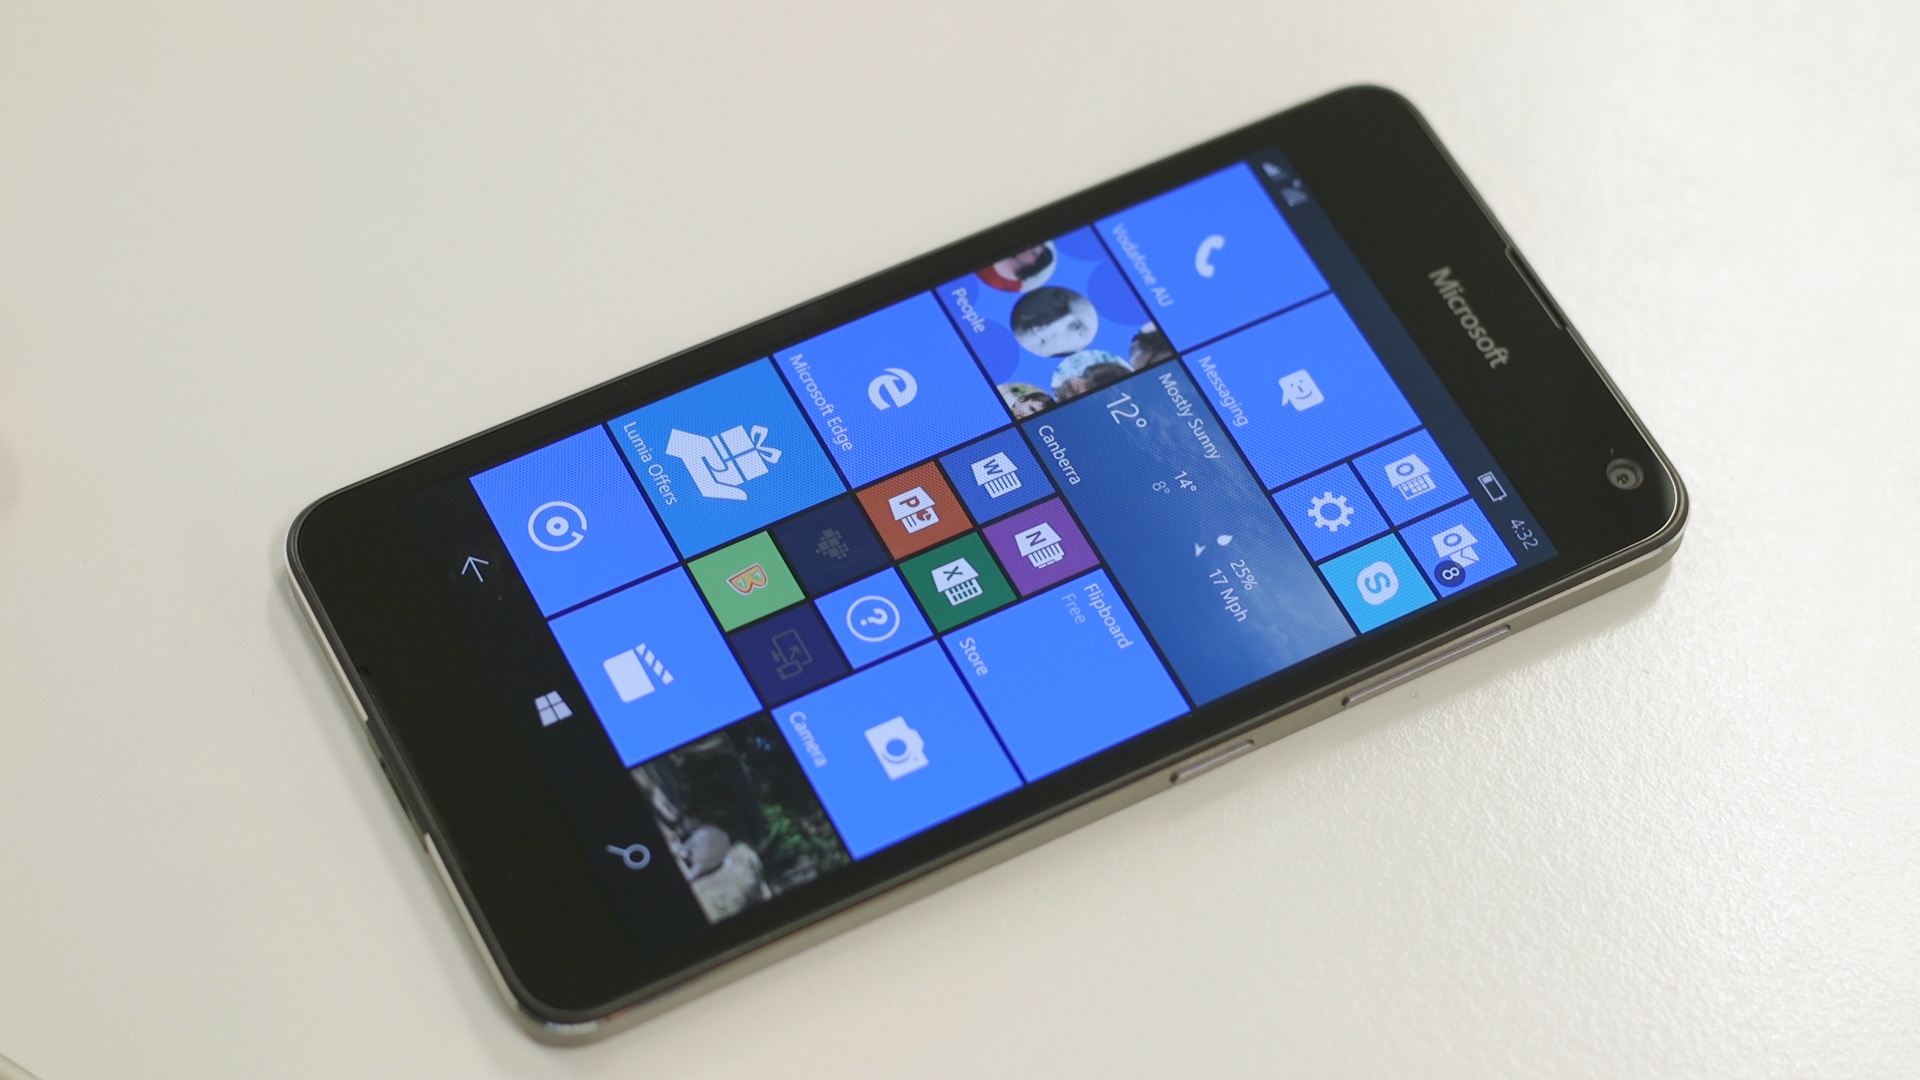 Video: Microsoft's Lumia 650 has good looks at a low price